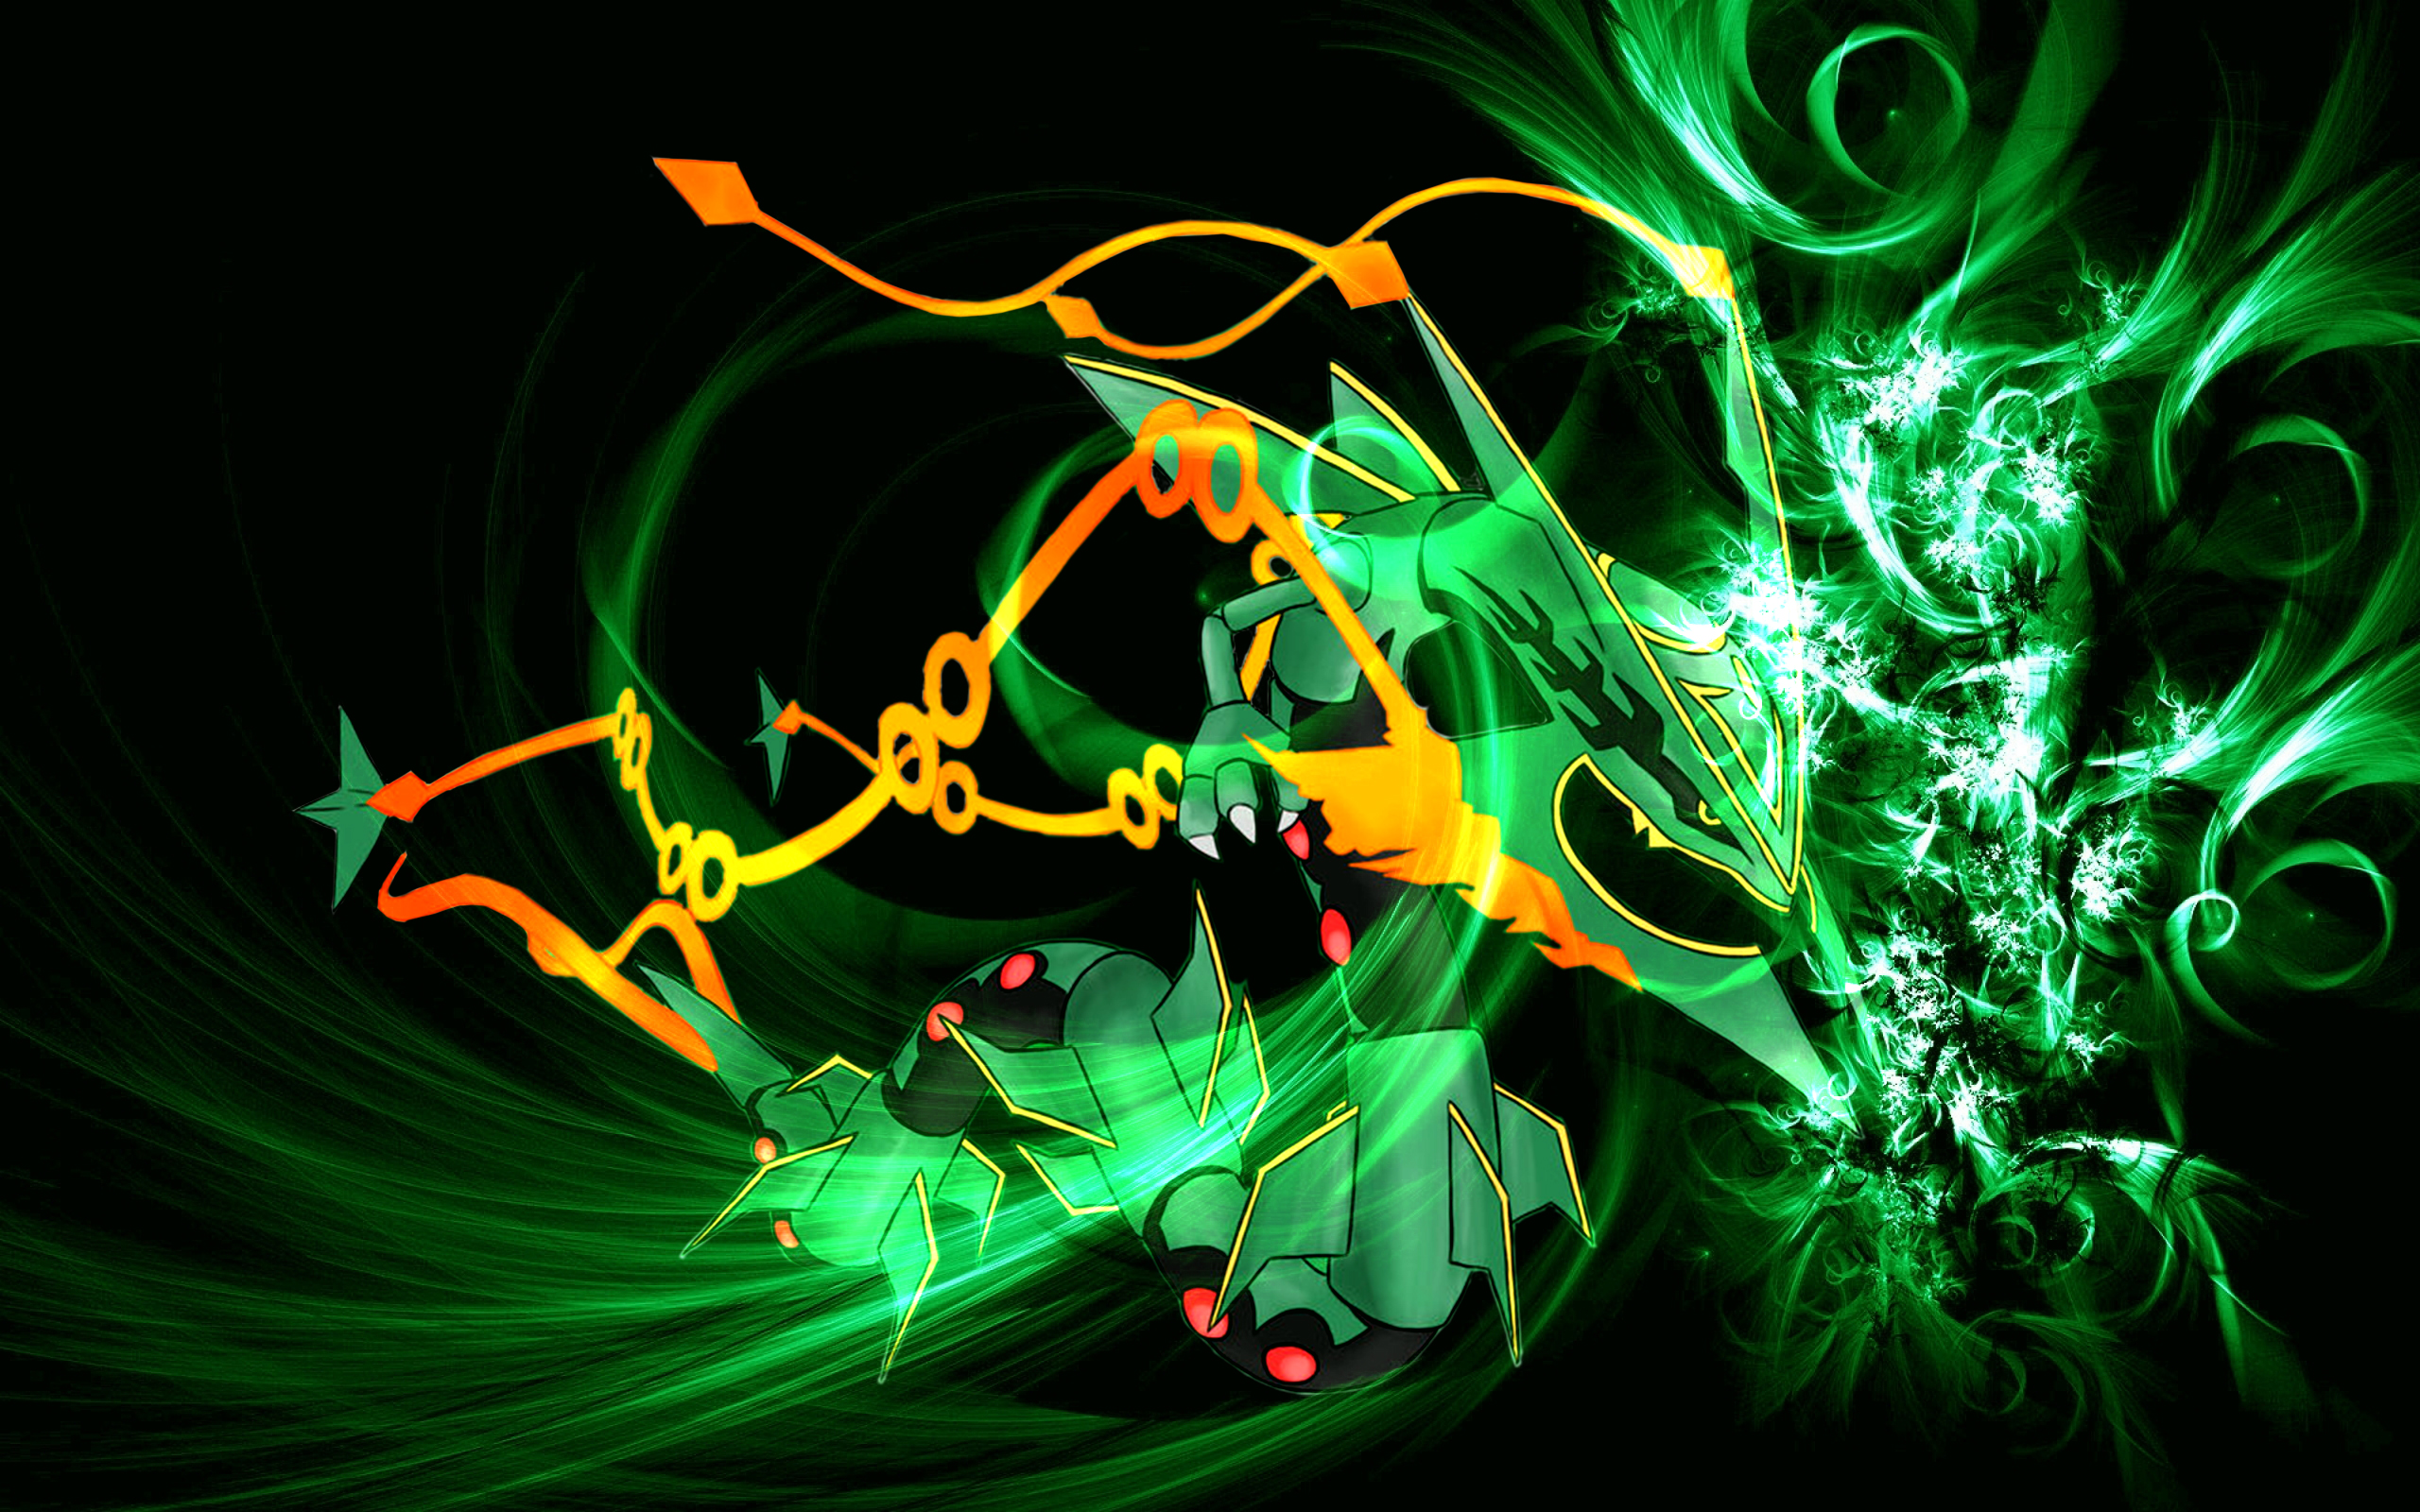 Mega rayquaza wallpaper wallpapersafari for Deviantart wallpaper